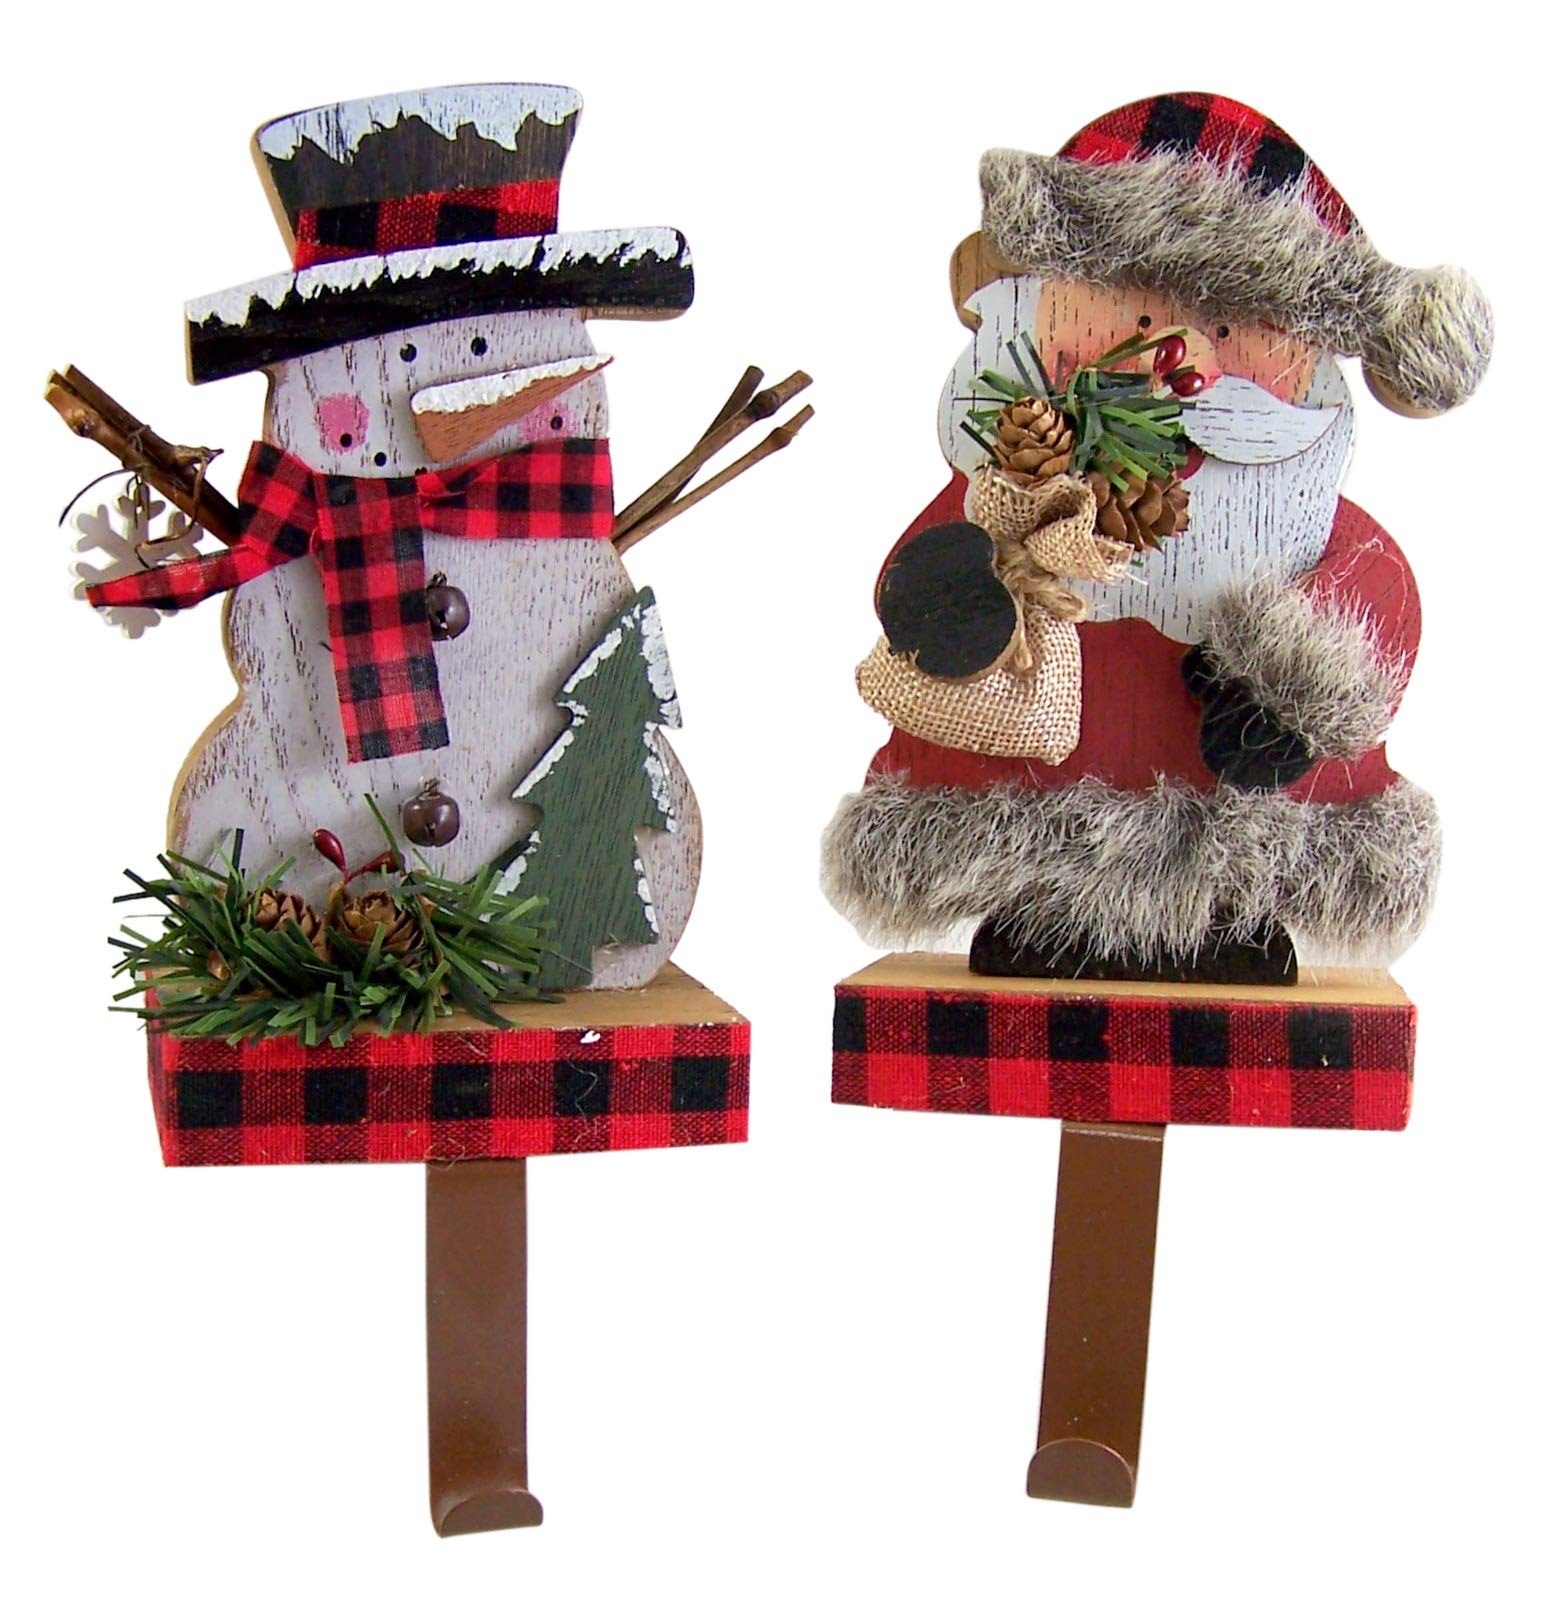 Christmas Decor Rustic Wooden Santa Claus and Snowman Stocking Holders, 7 1/2 Inches